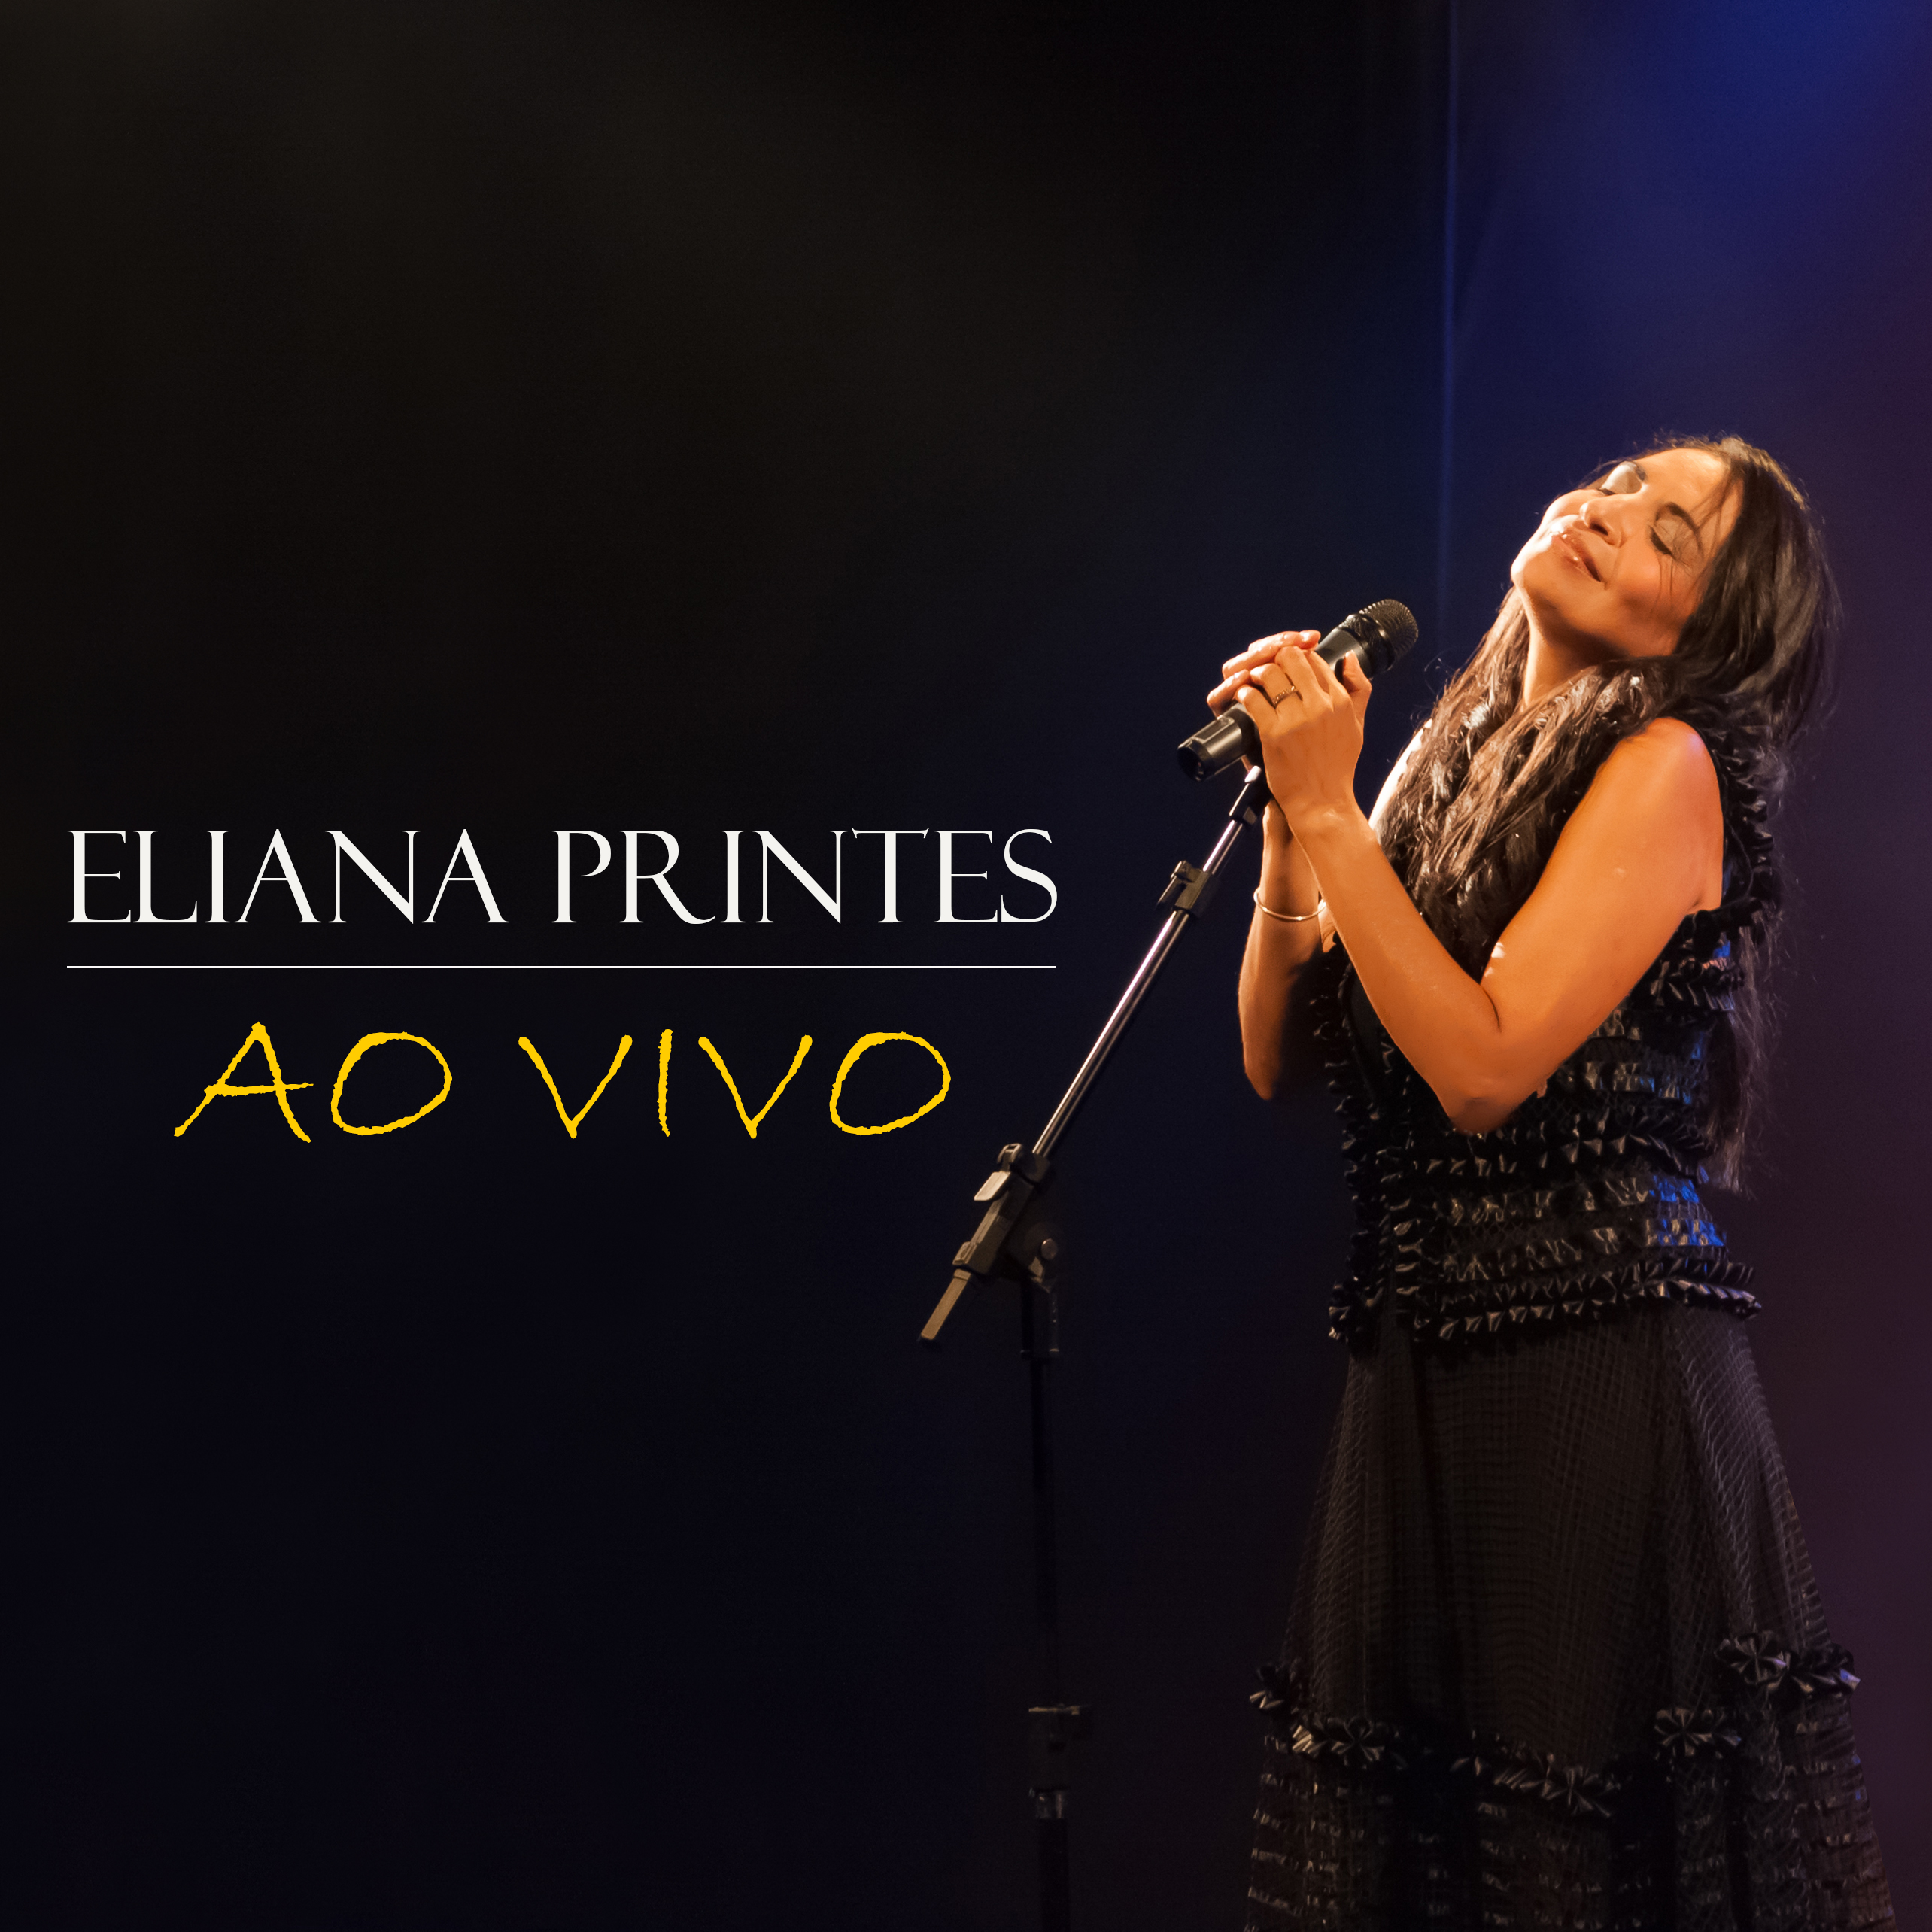 Capa do álbum Eliana Printes Ao Vivo